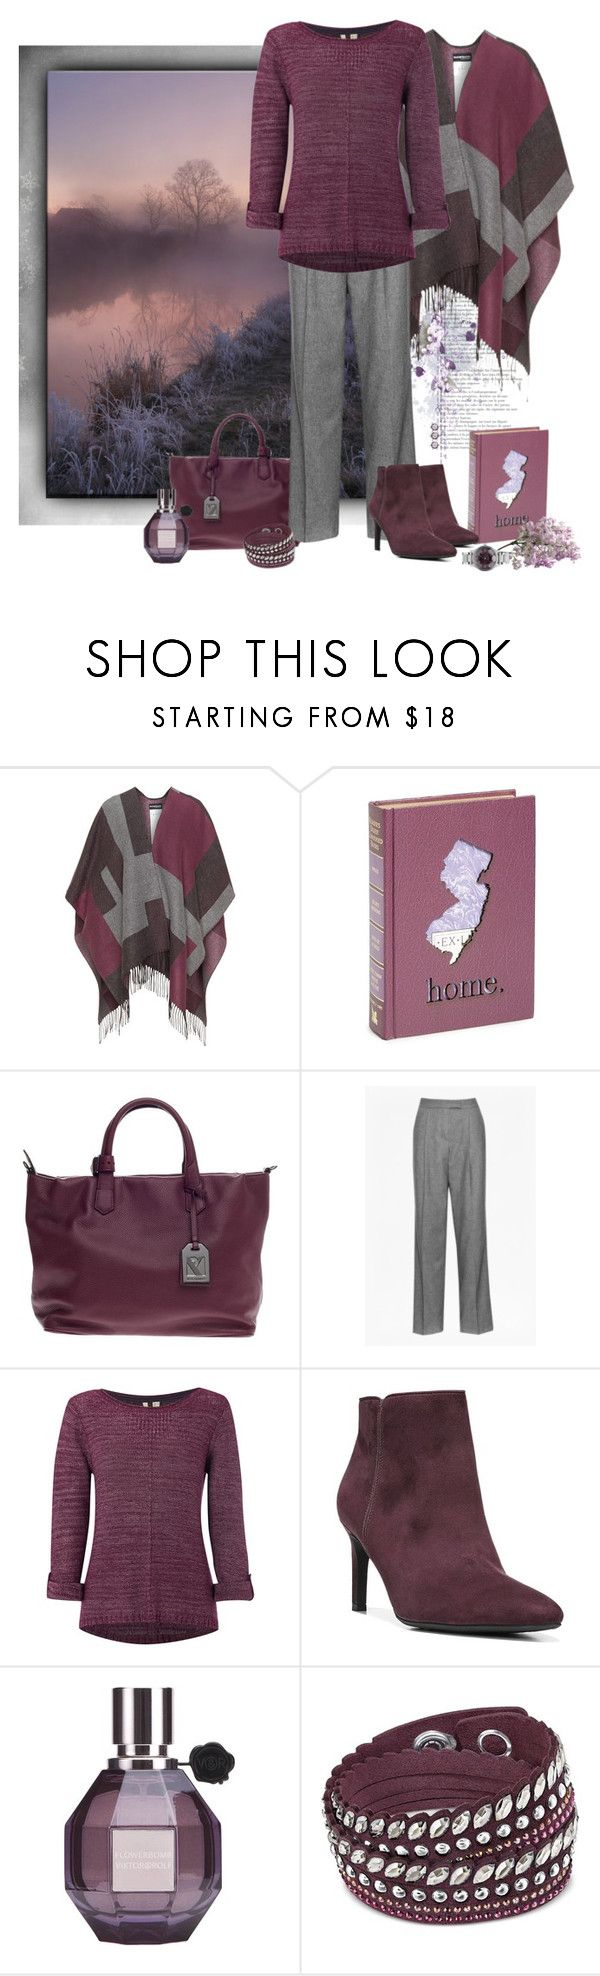 """""""Gray & Plum"""" by love-n-laughter ❤ liked on Polyvore featuring Samoon, Second Nature By Hand, Reed Krakoff, White Stuff, Circus by Sam Edelman, Viktor & Rolf, Swarovski and Nixon"""